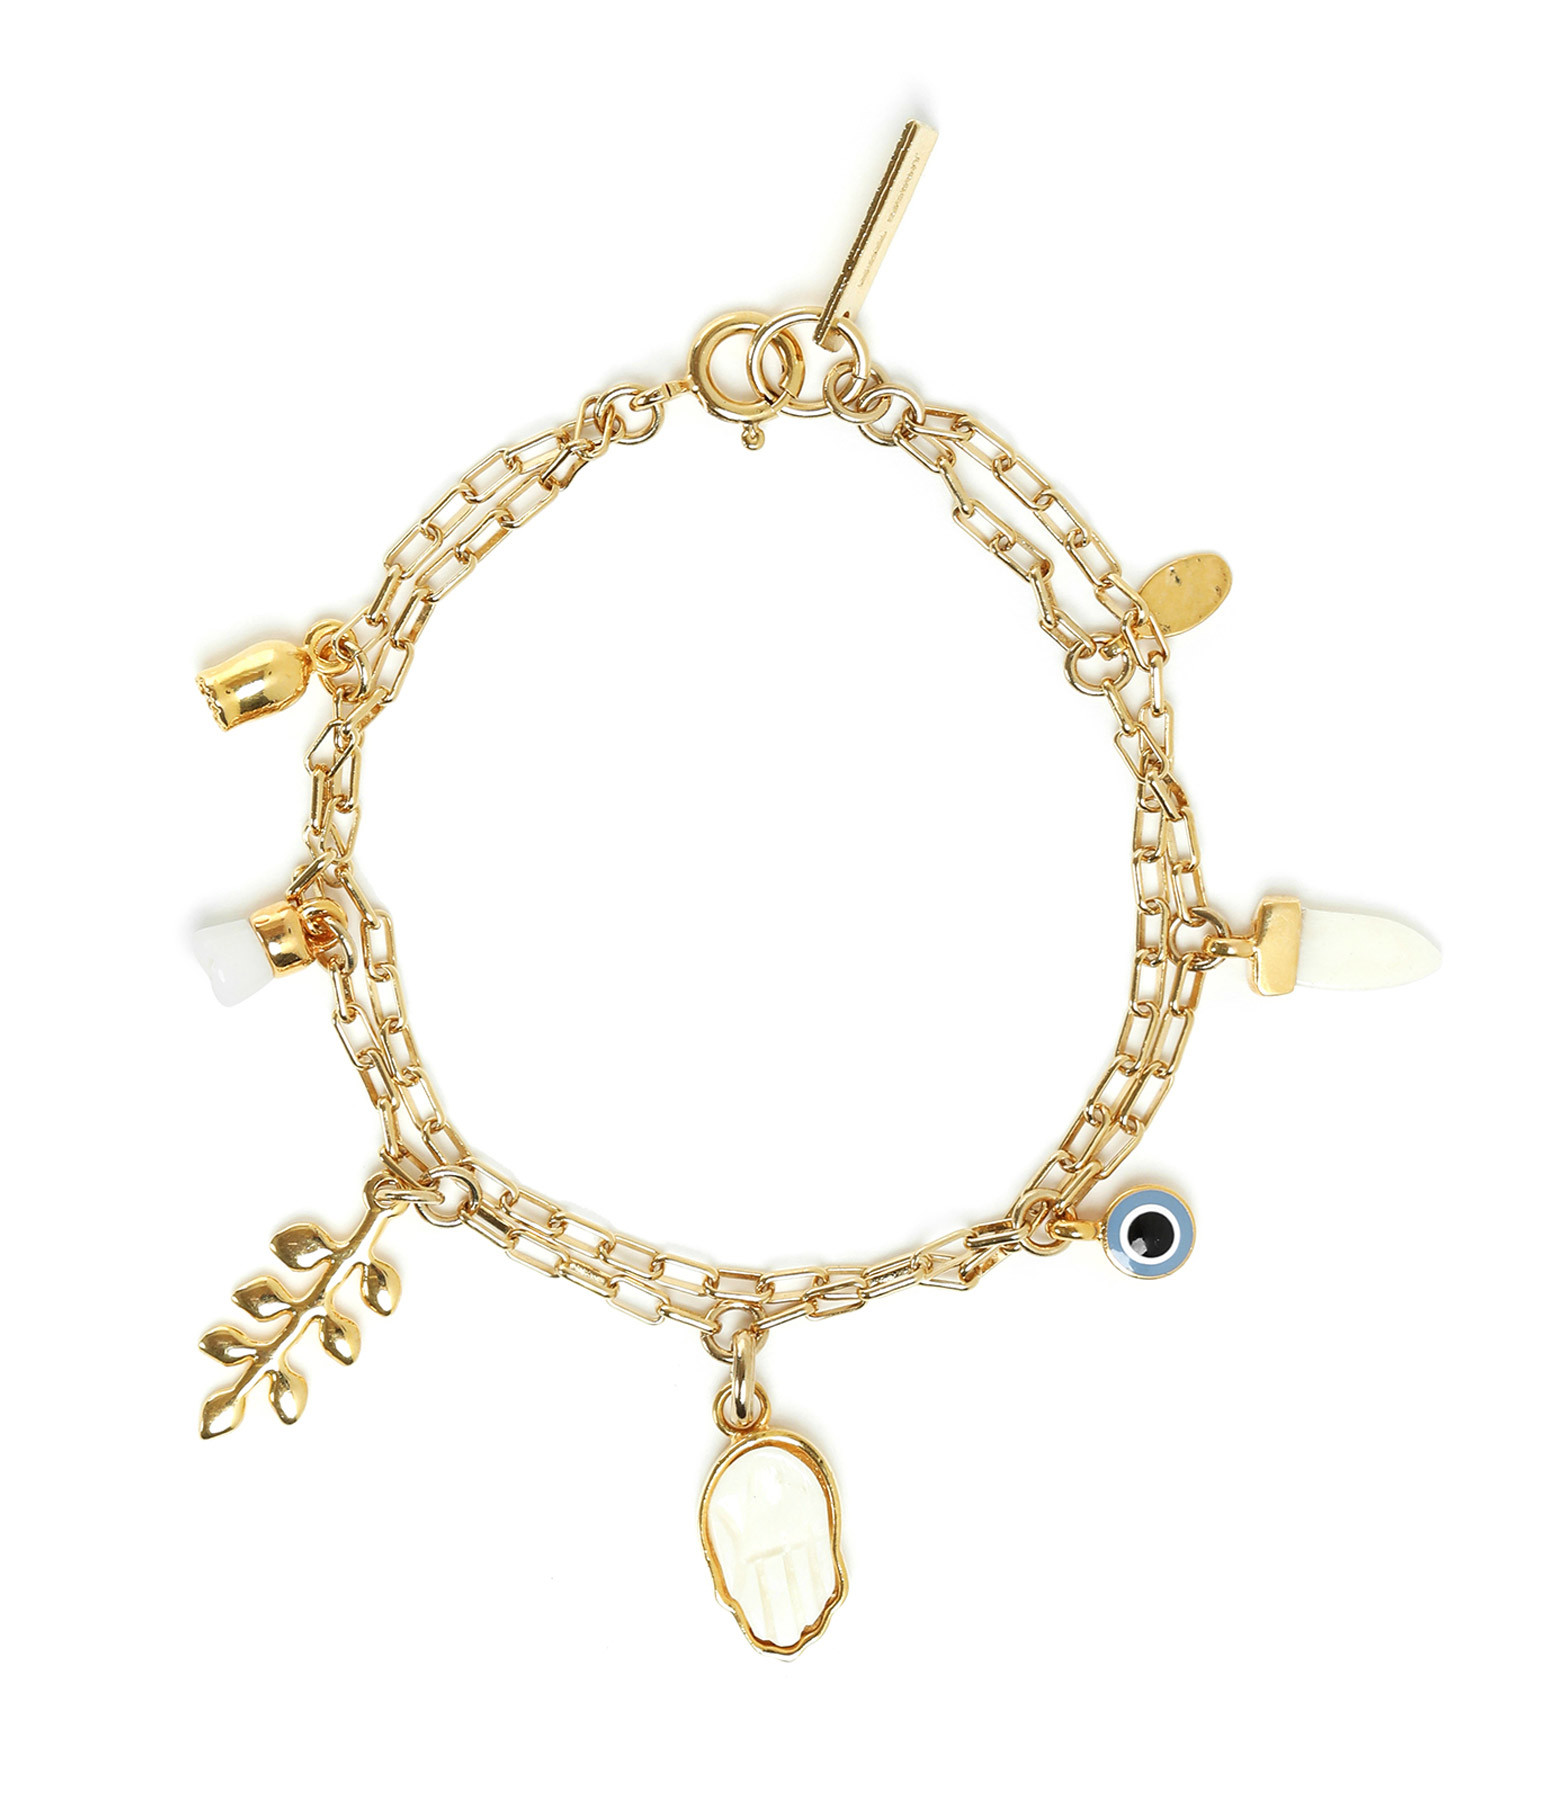 ISABEL MARANT - Bracelet New Its All Laiton Buffle Écru